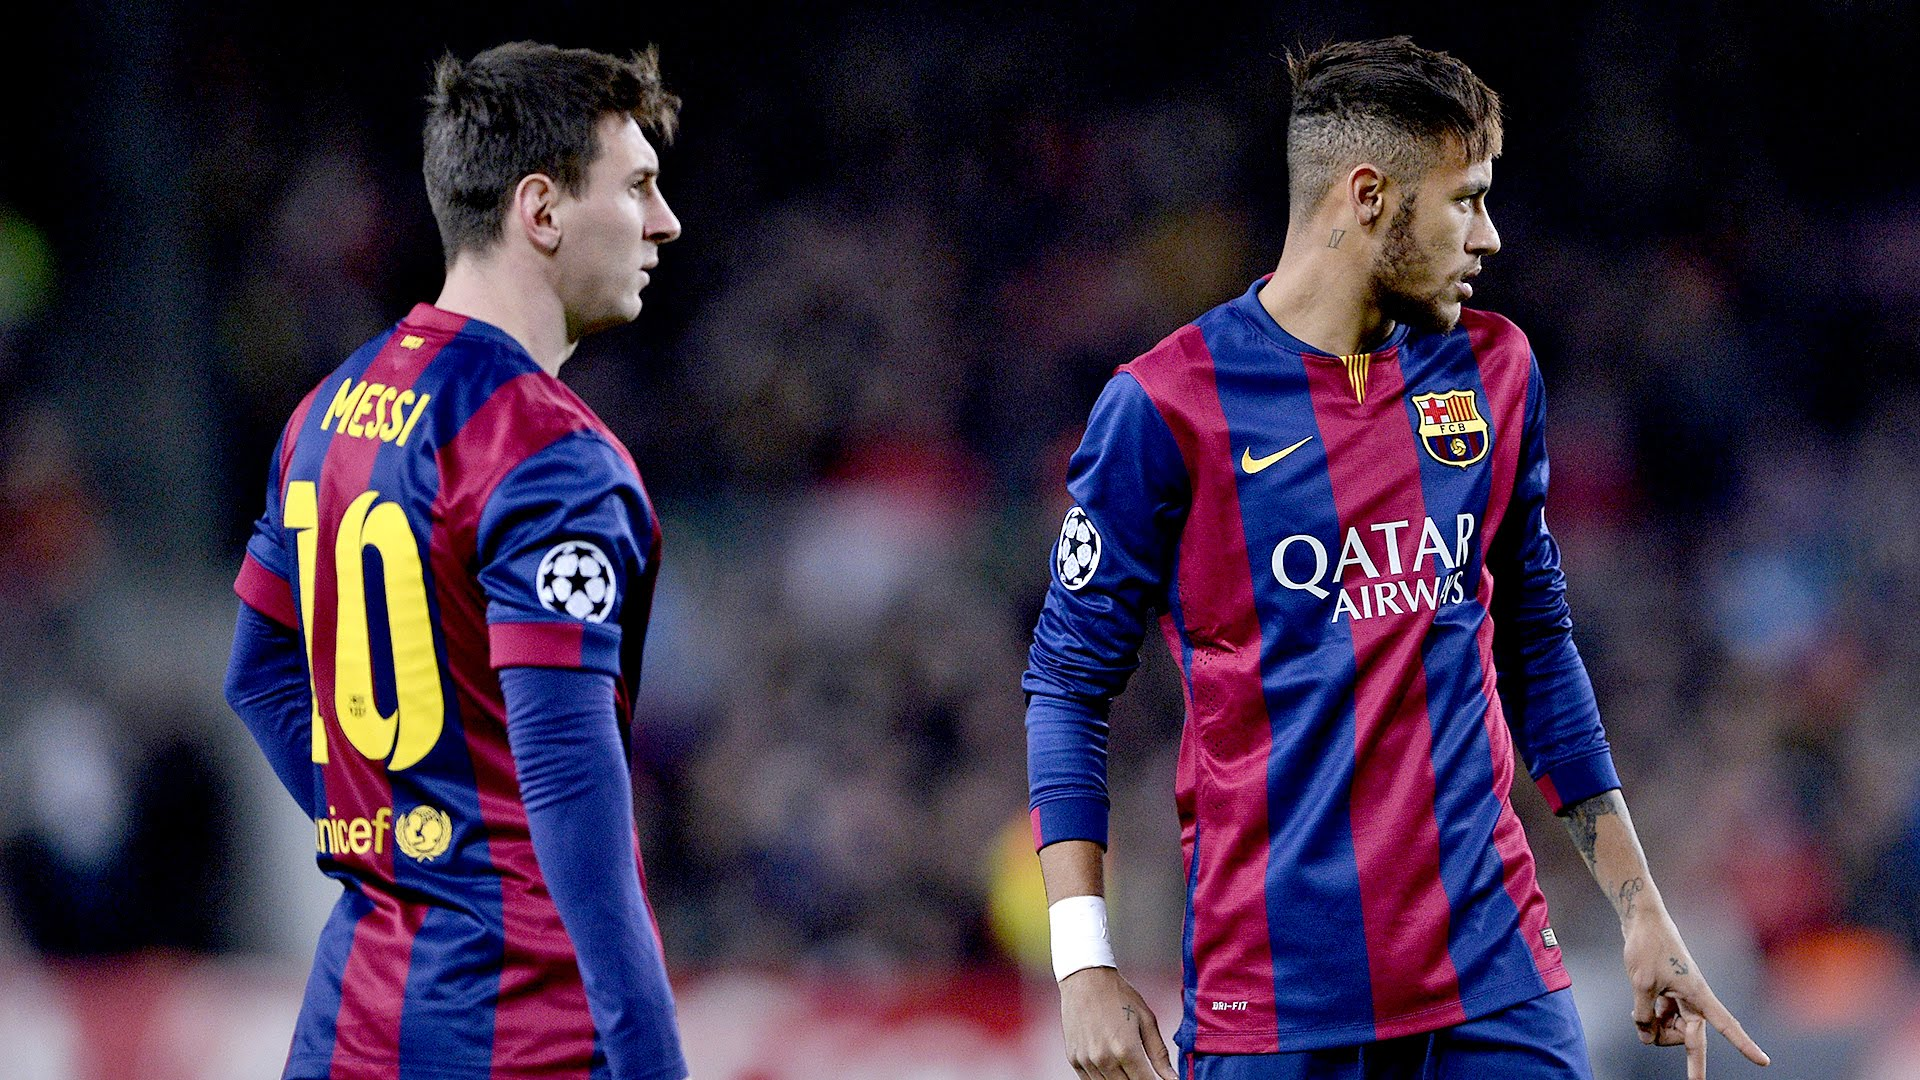 Messi and Neymar Wallpapers - WallpaperSafari